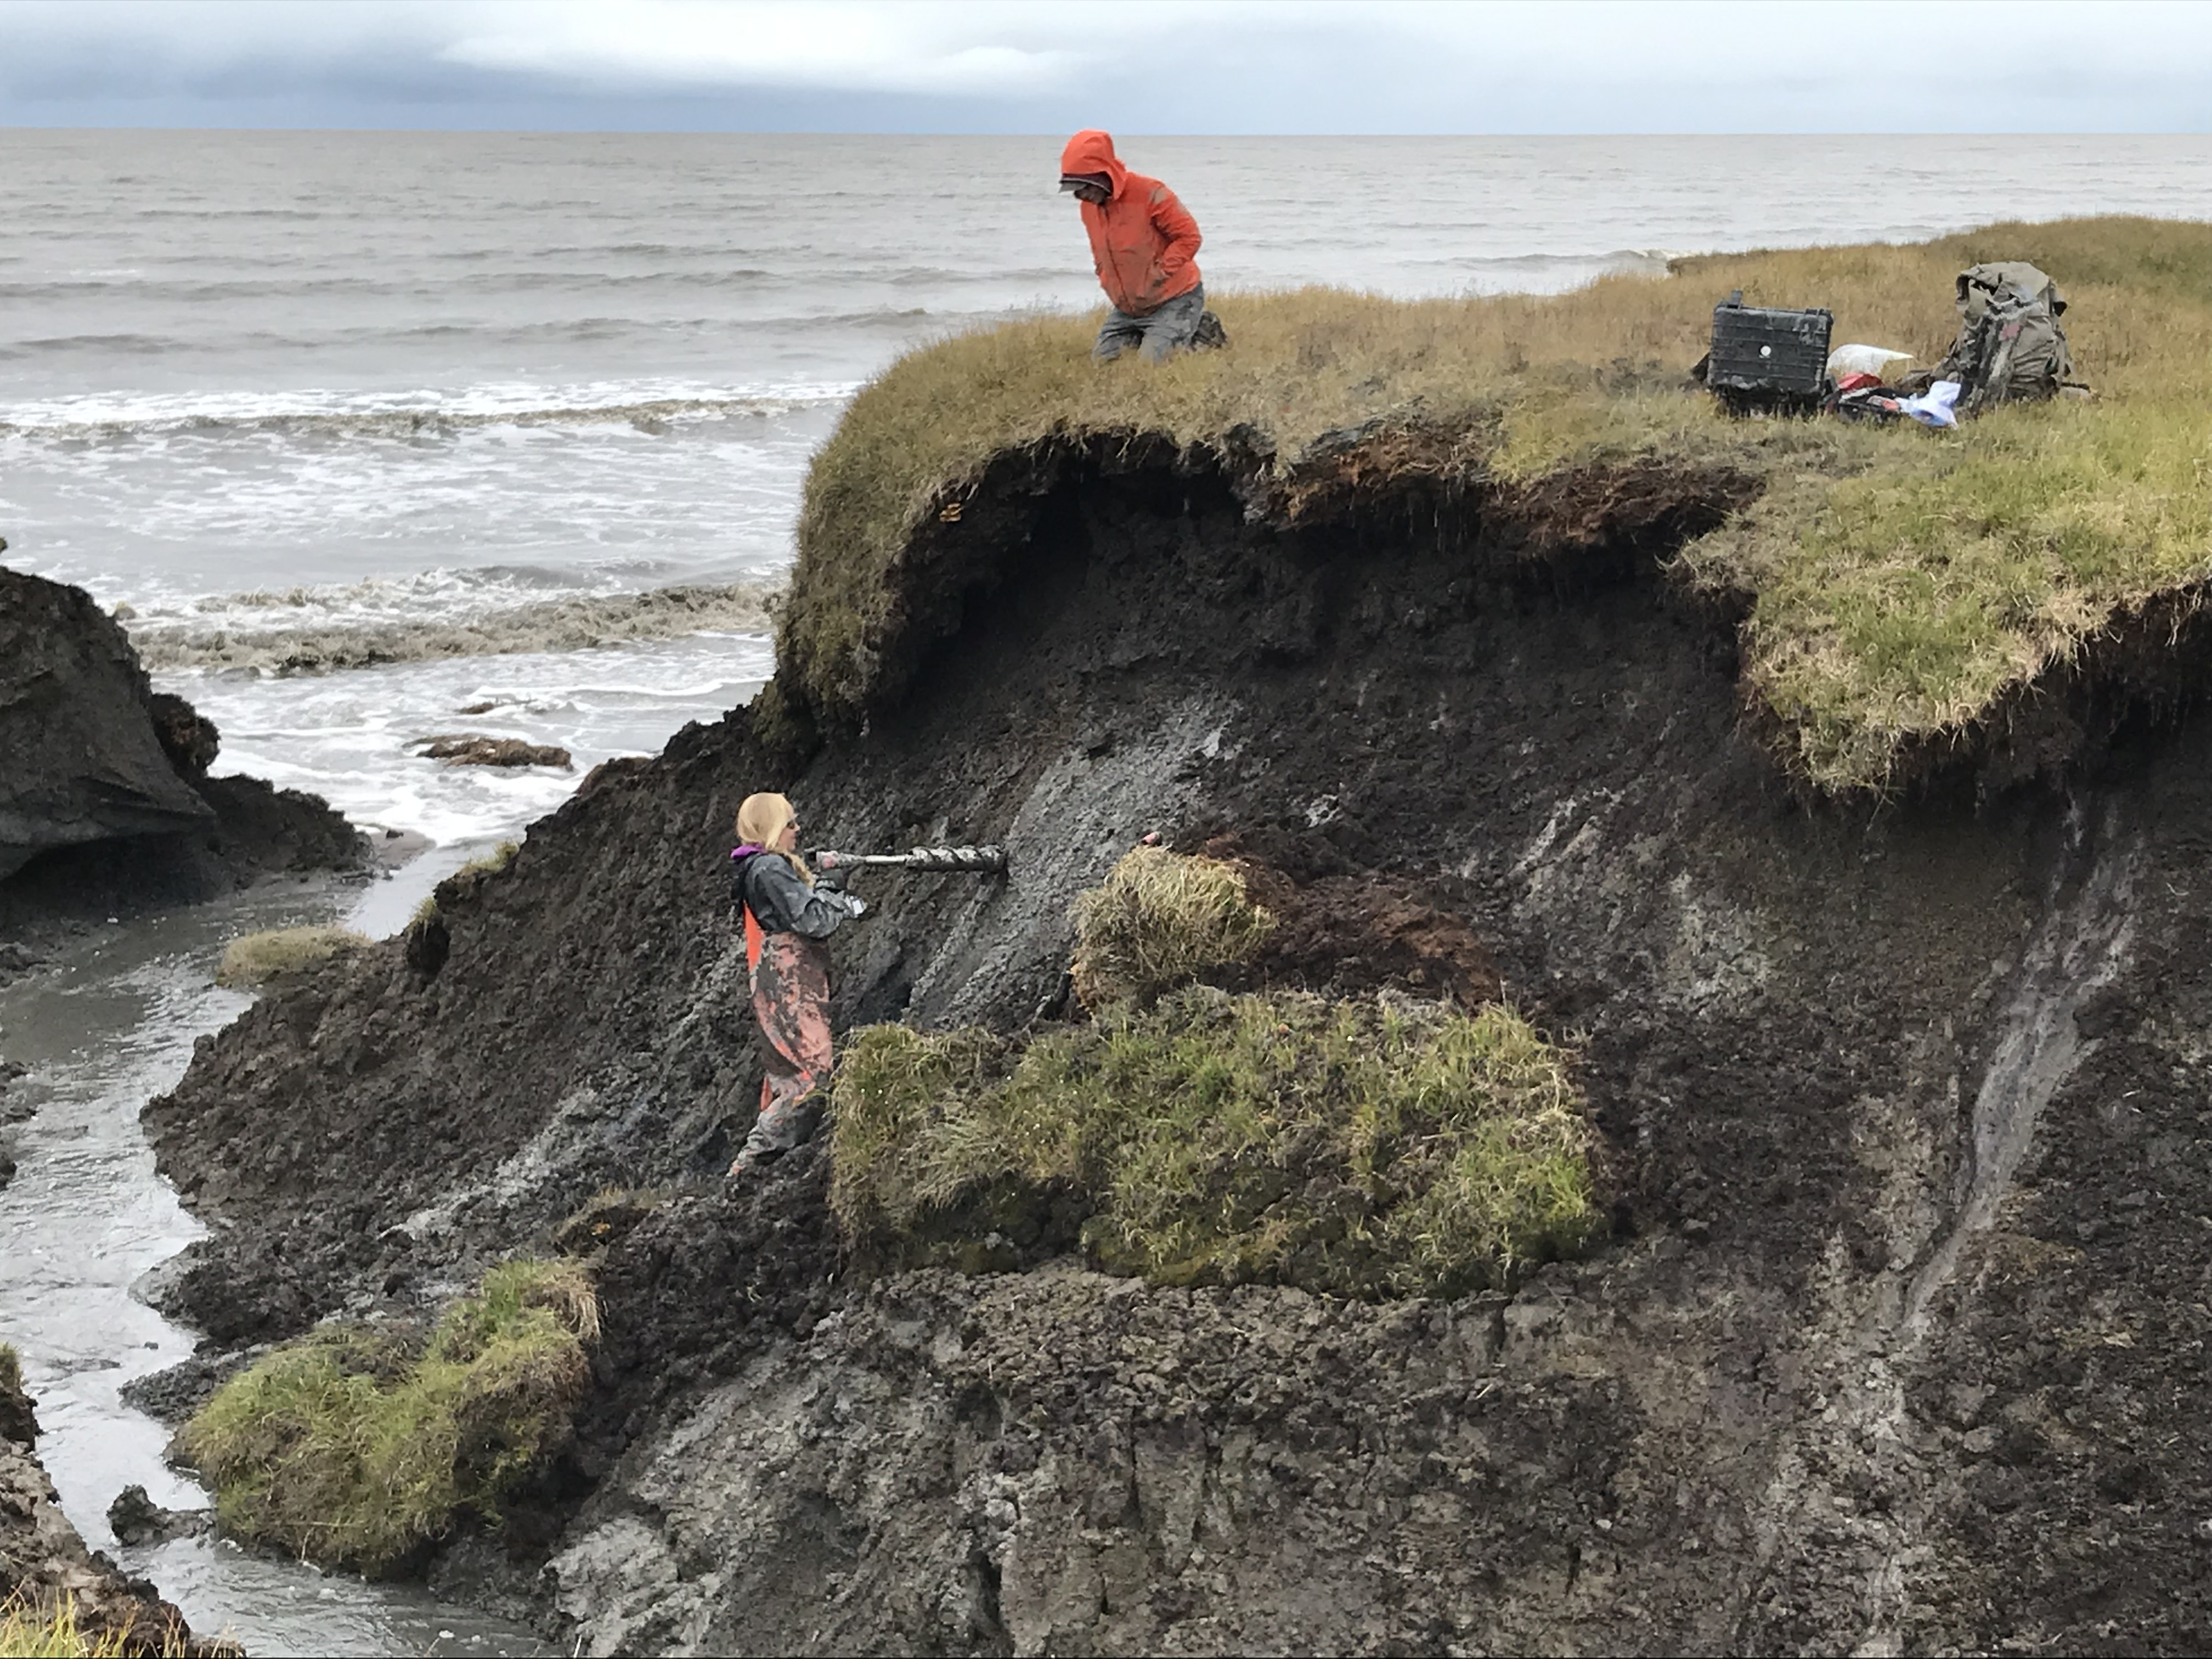 Coring permafrost in a thermo-erosional gully at Drew Point, Alaska.